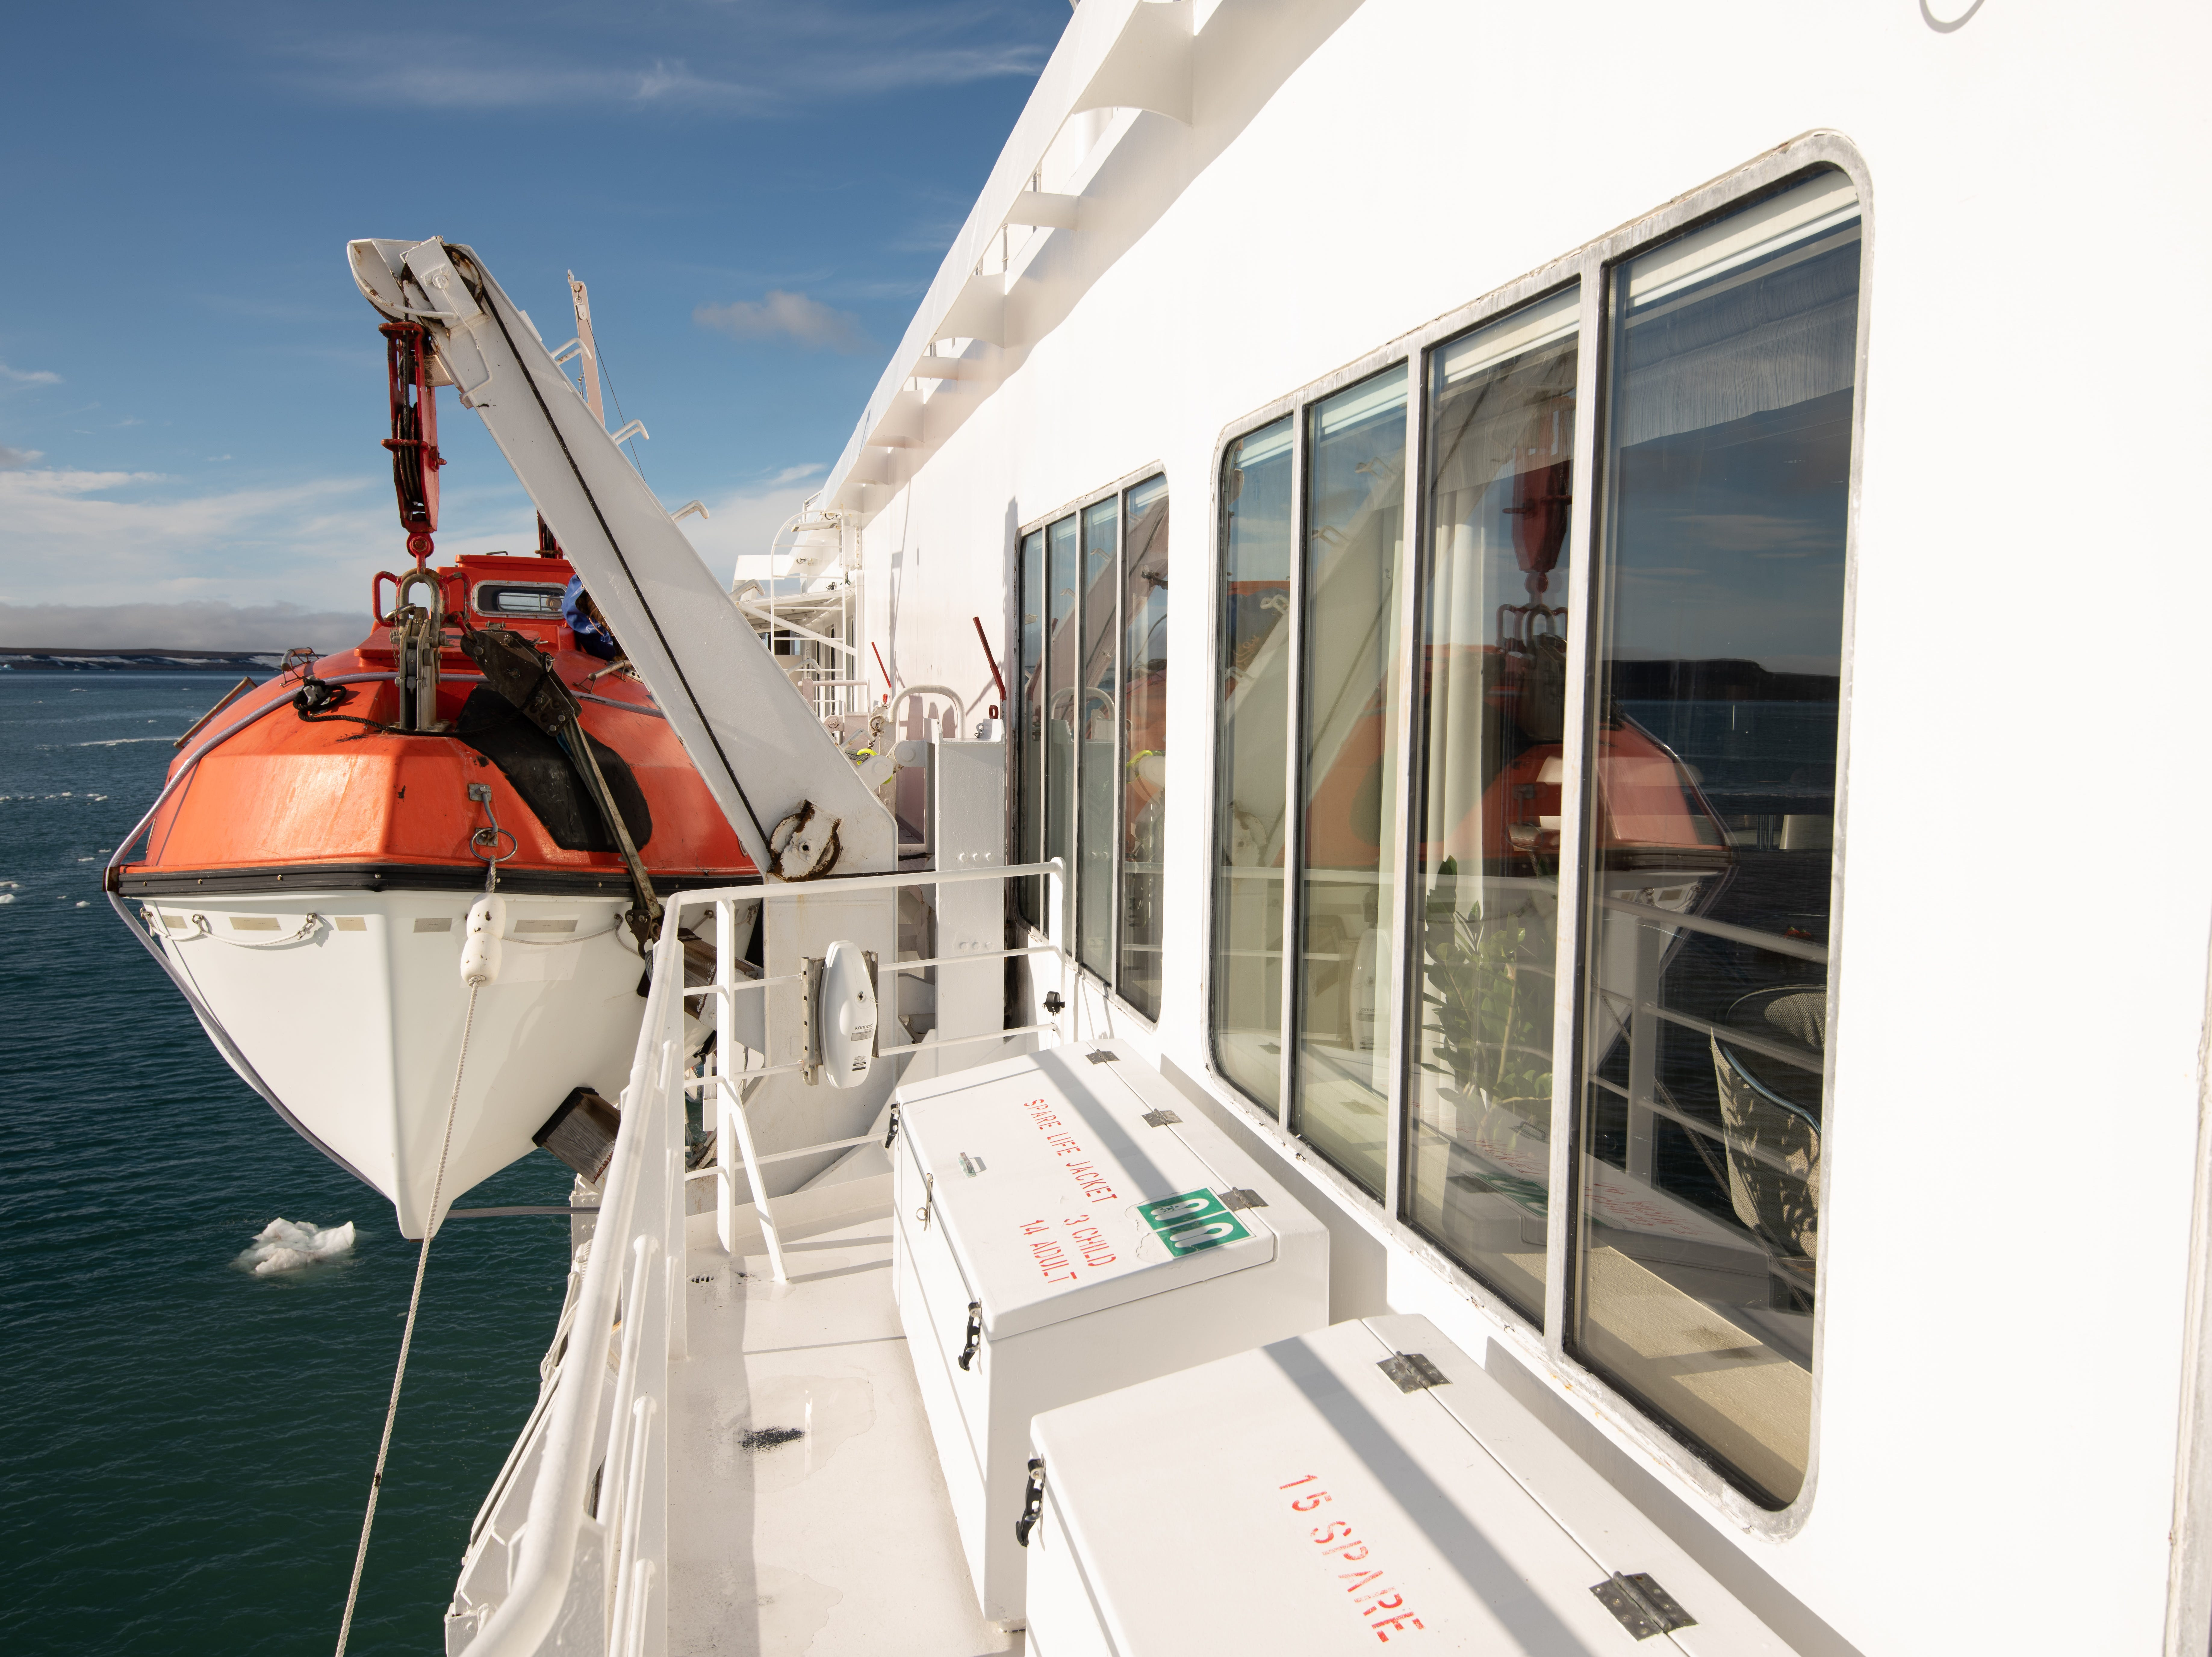 The exterior viewing area on Deck 7 wraps around the side of the ship to points where the vessel's lifeboats are visible.